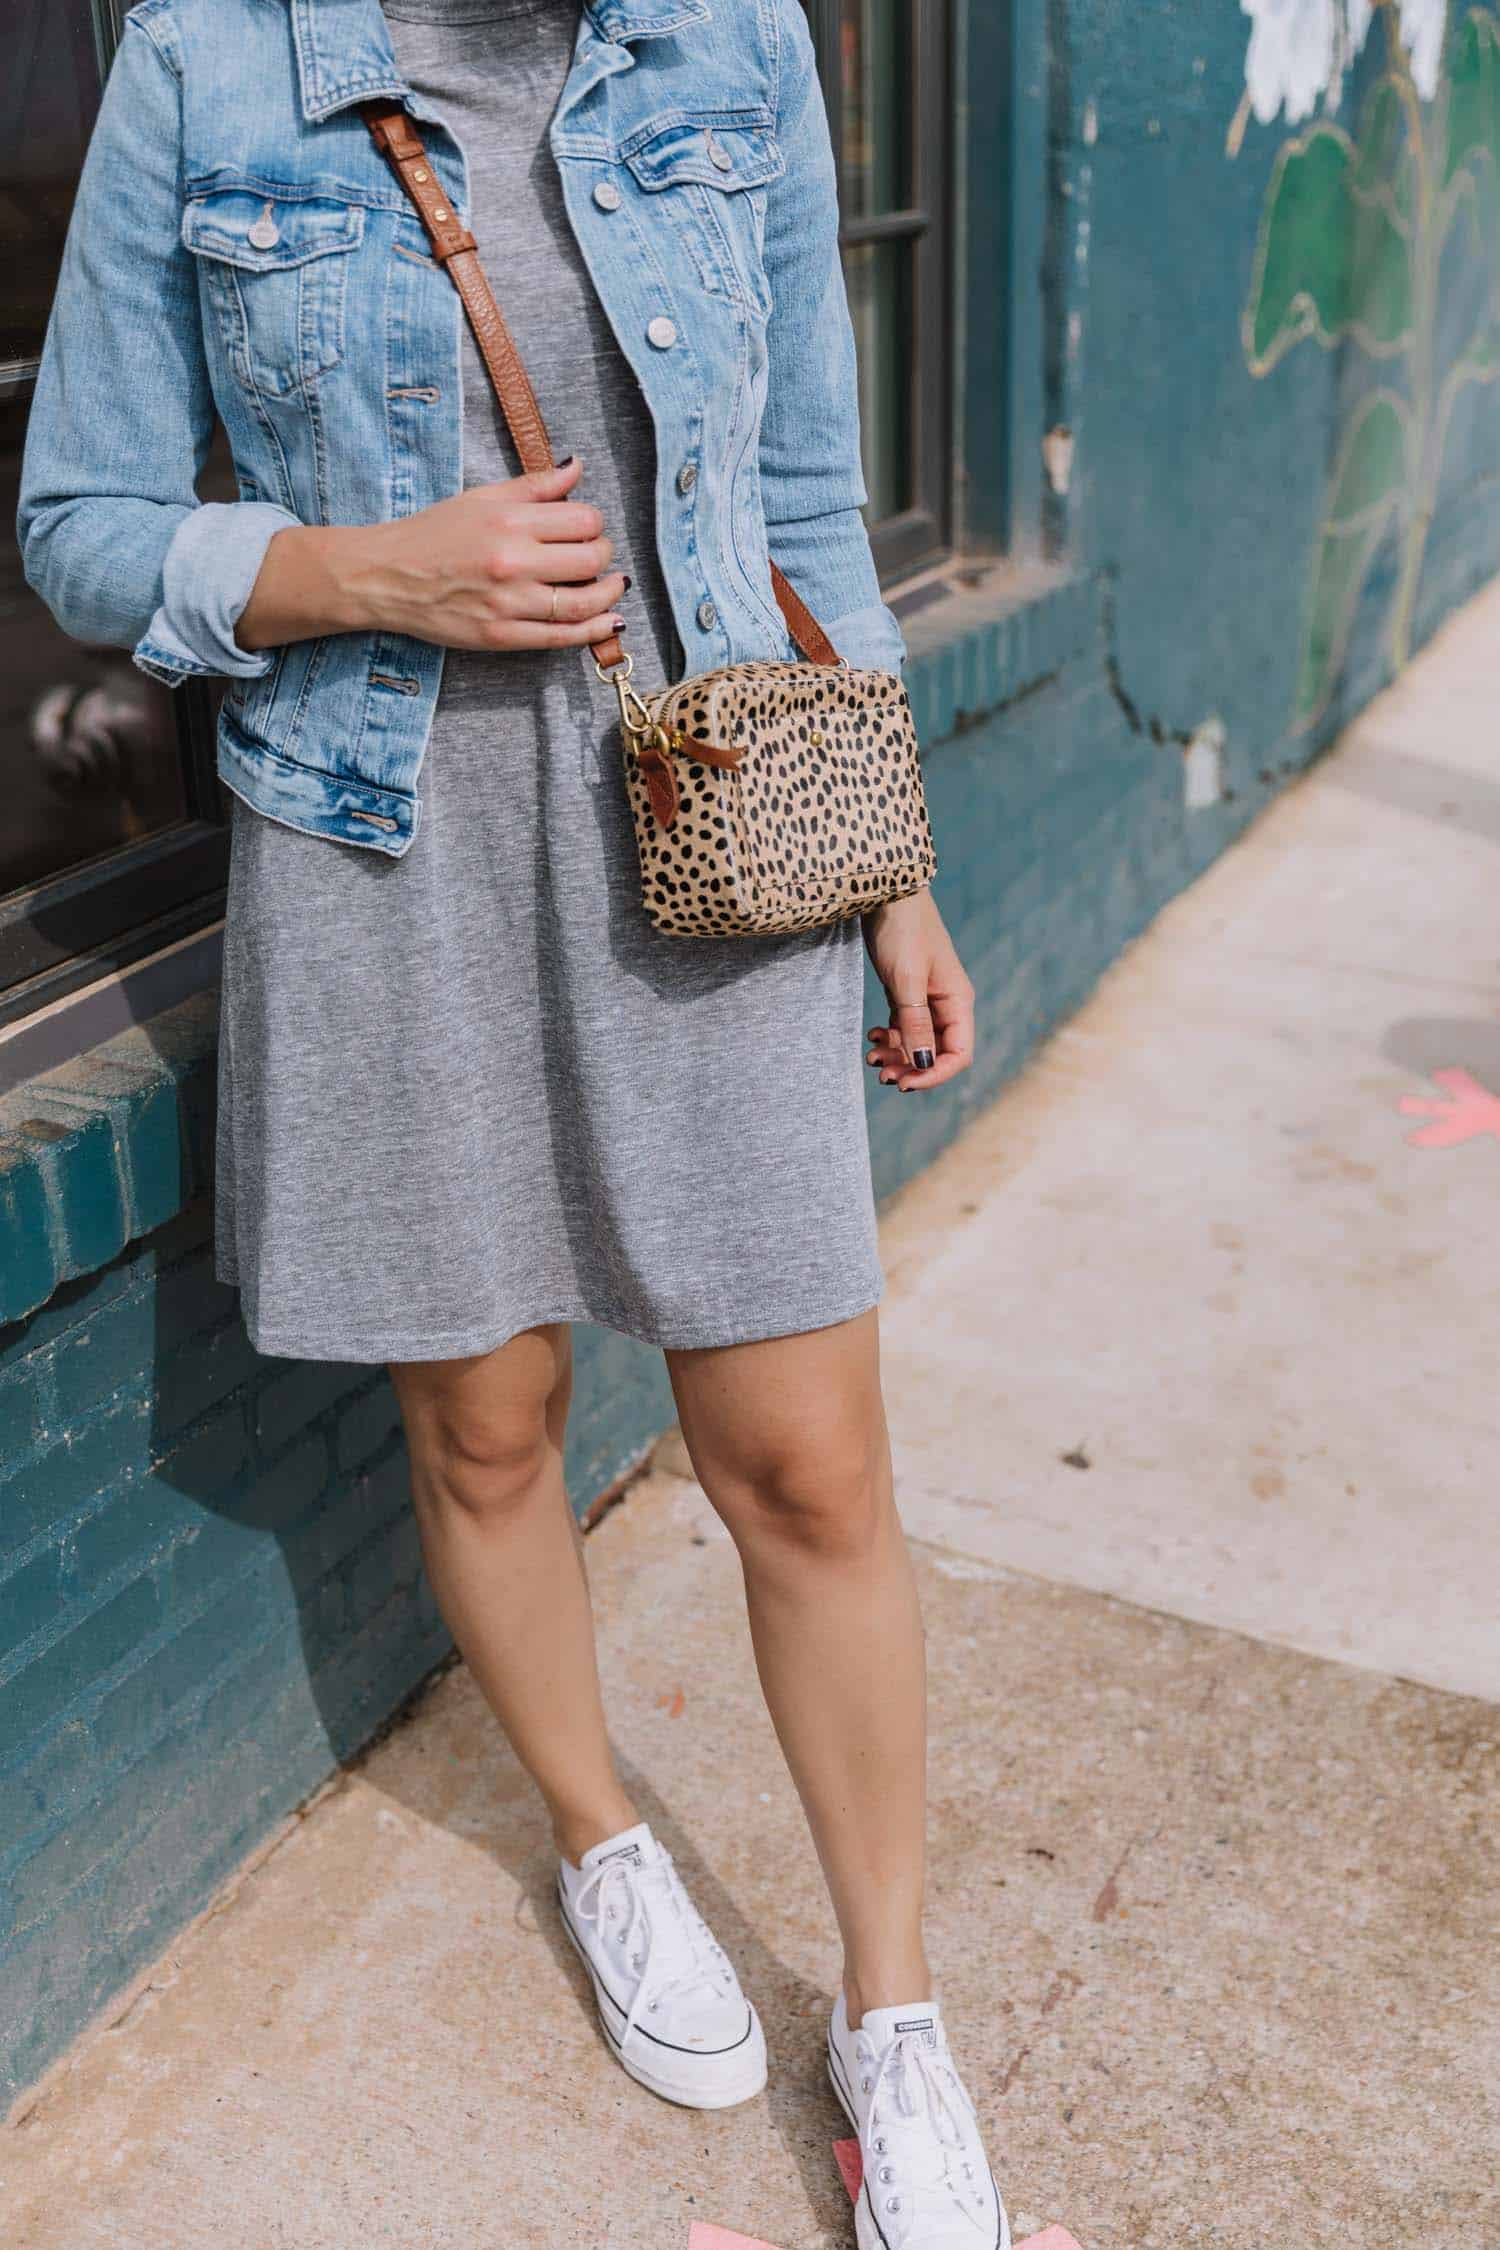 t-shirt dress outfit ideas for spring and fall